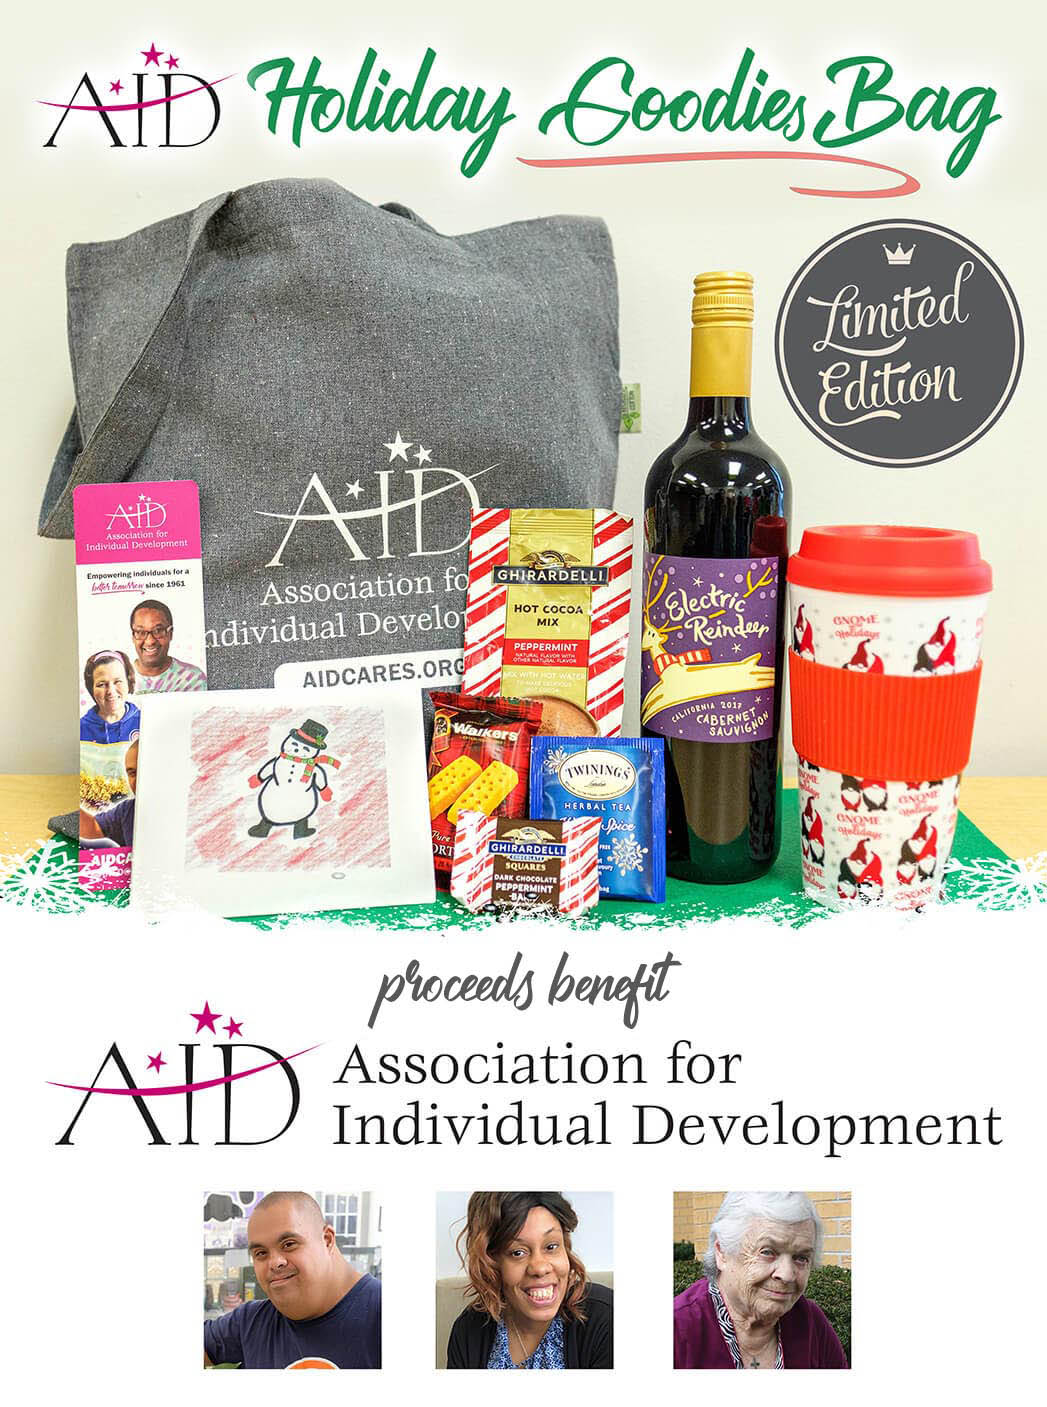 AID Holiday Goodies Bag